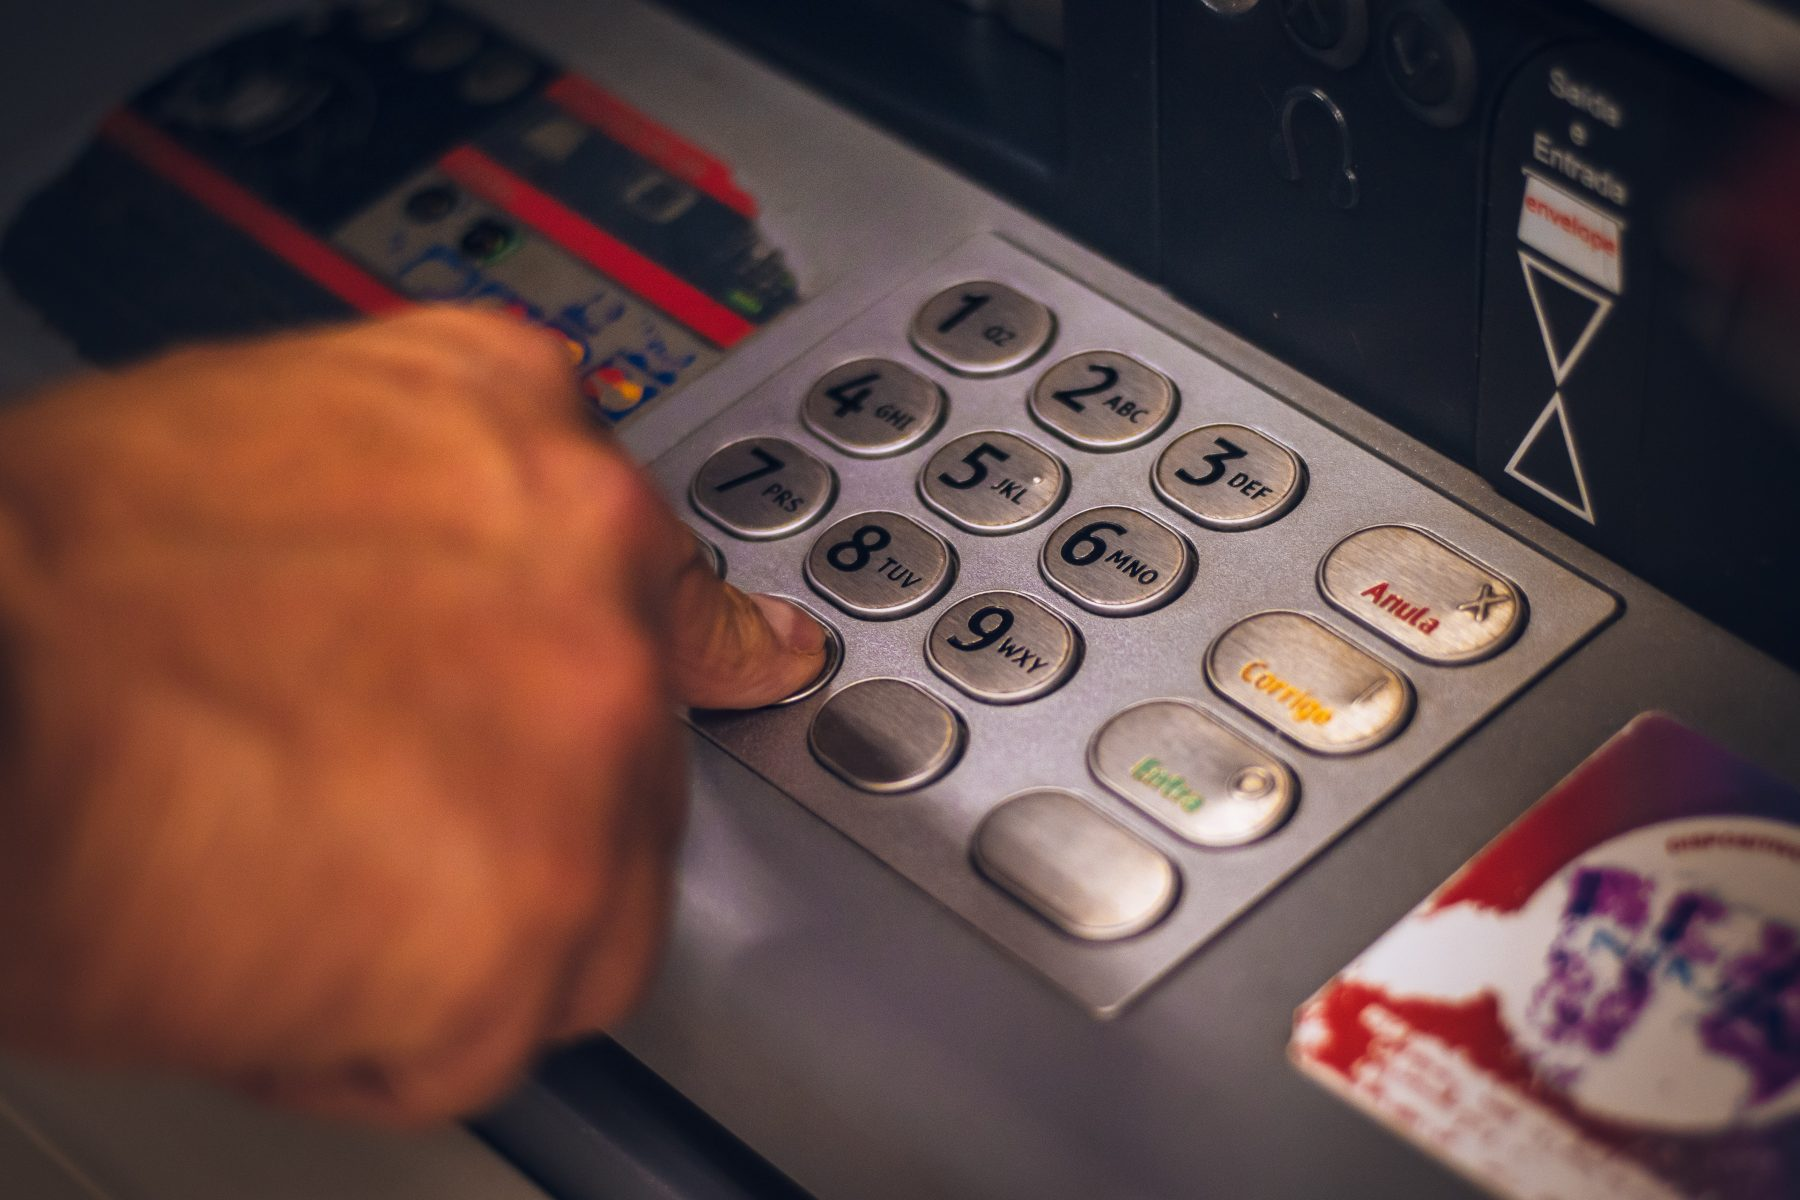 How To Find The Nearest Cashpoint